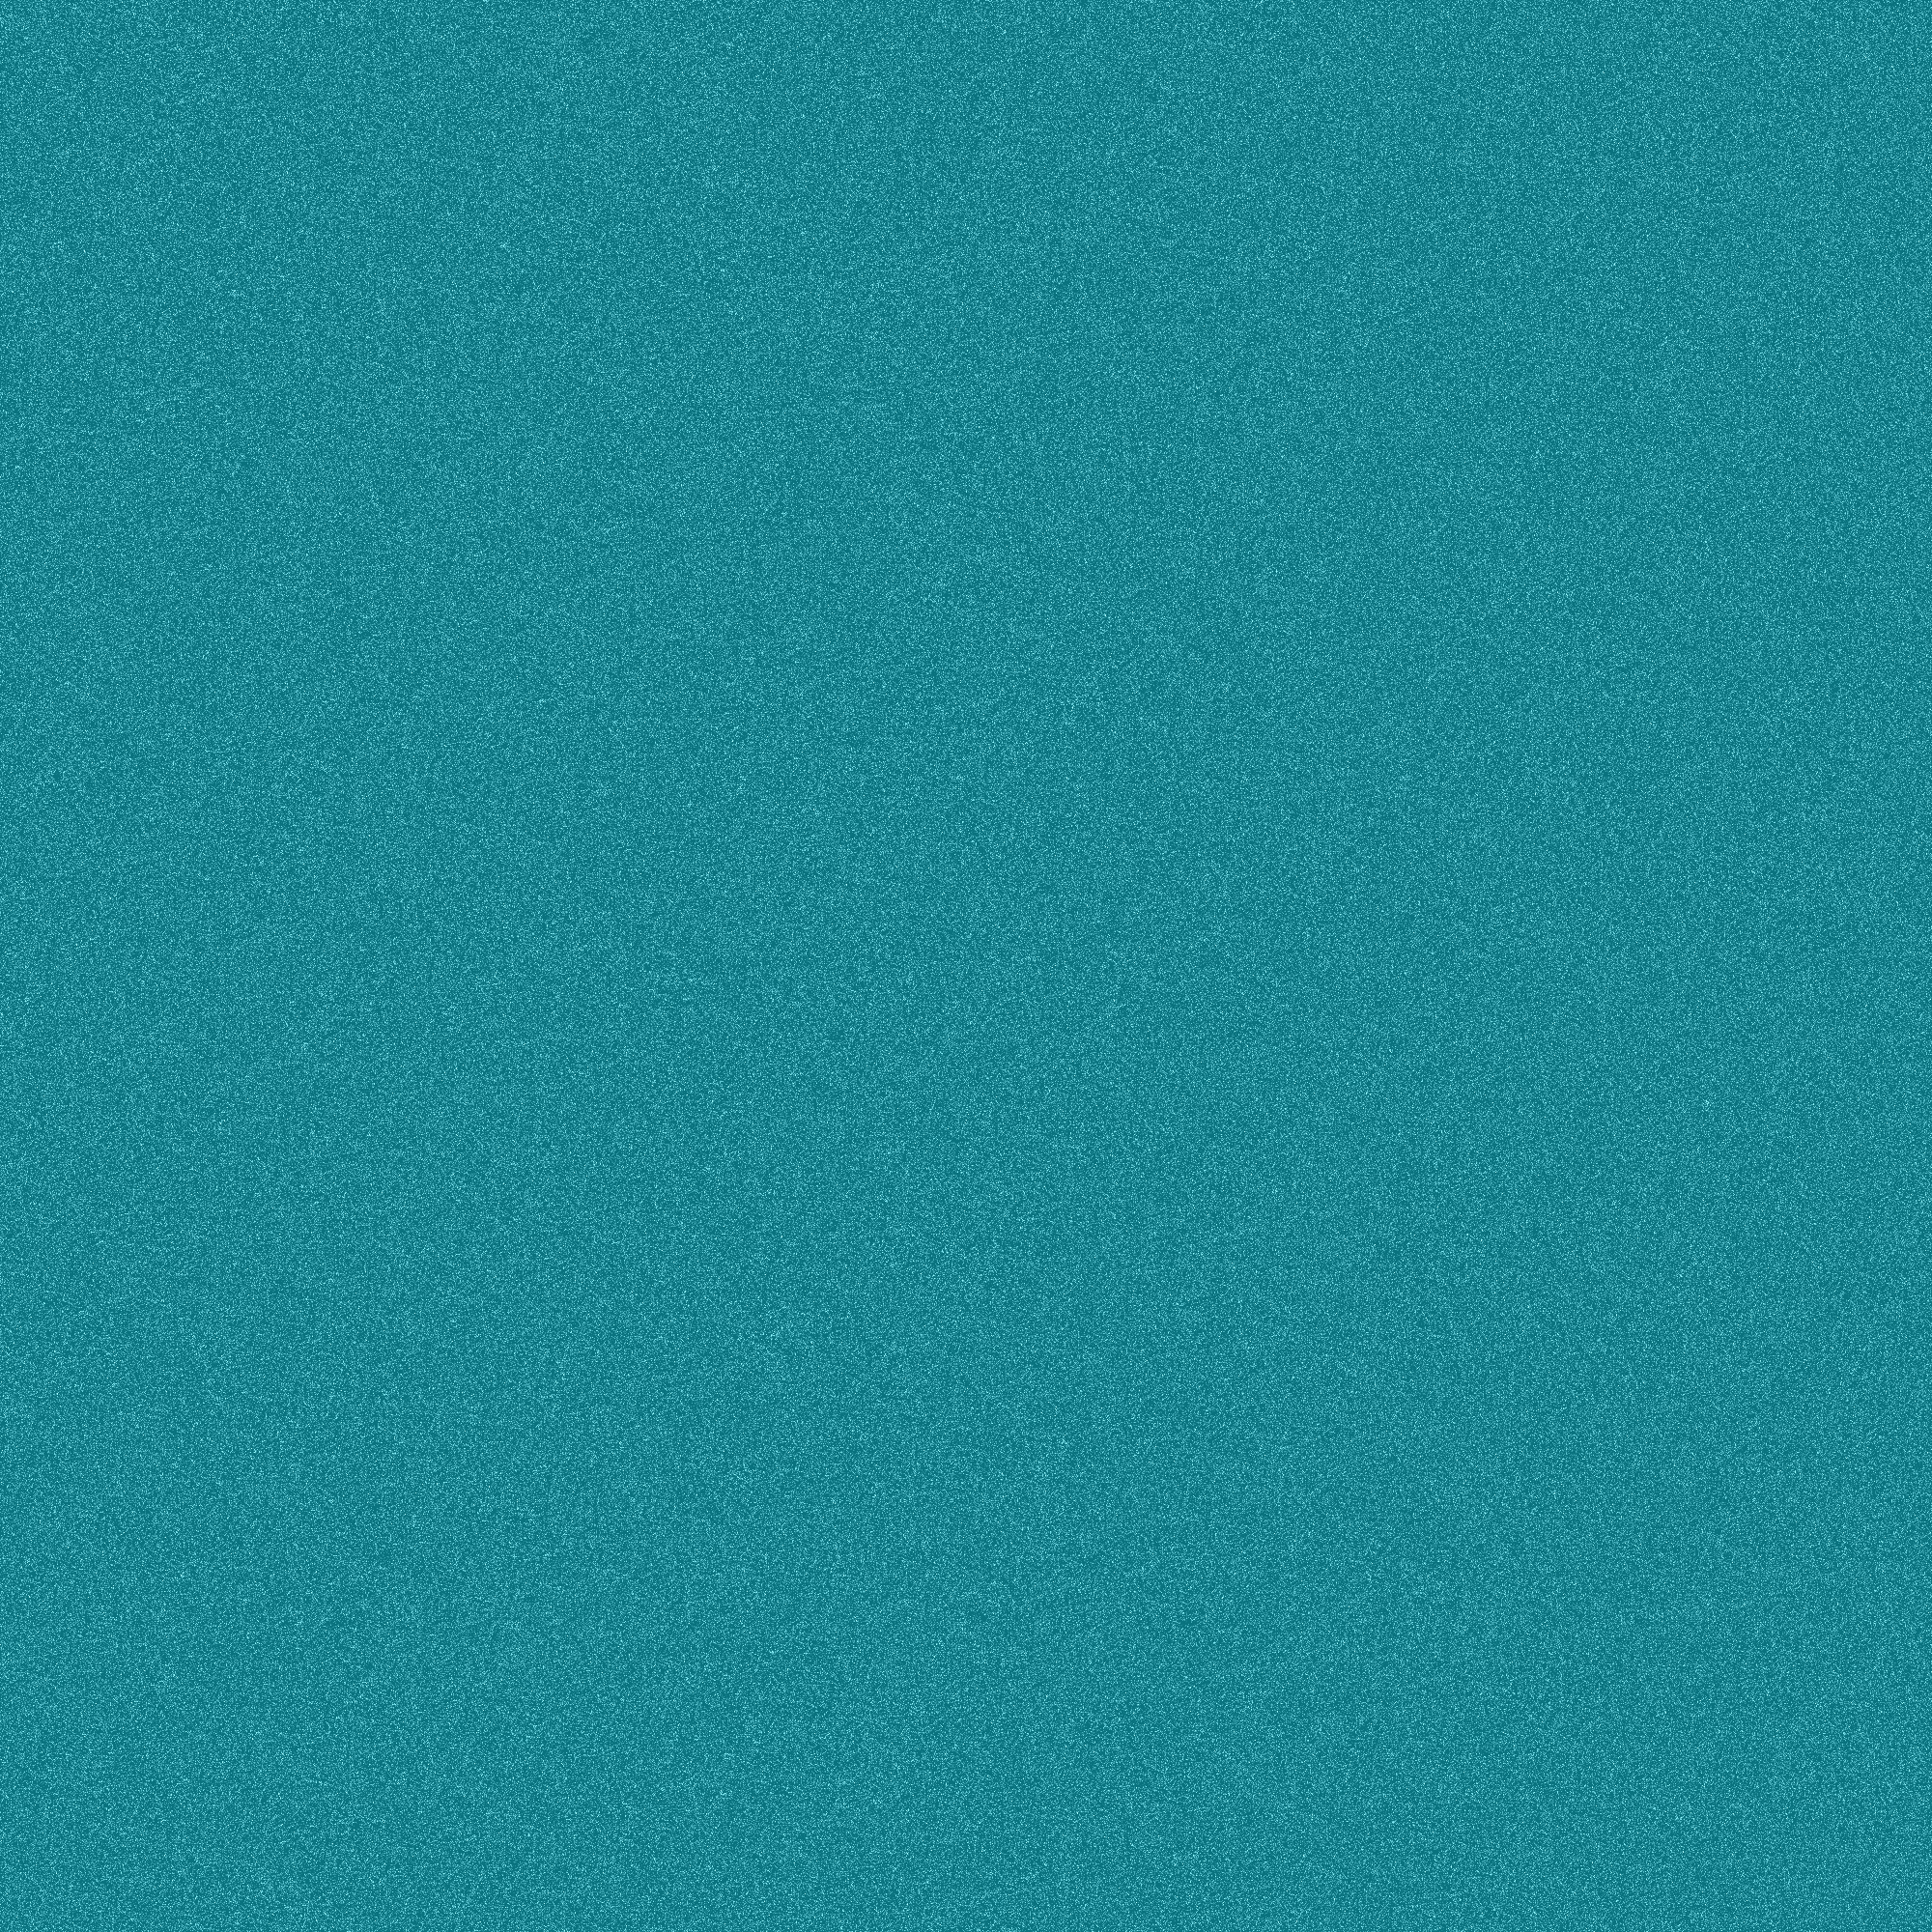 Turquoise Blue Wallpapers Pattern Hq Turquoise Blue